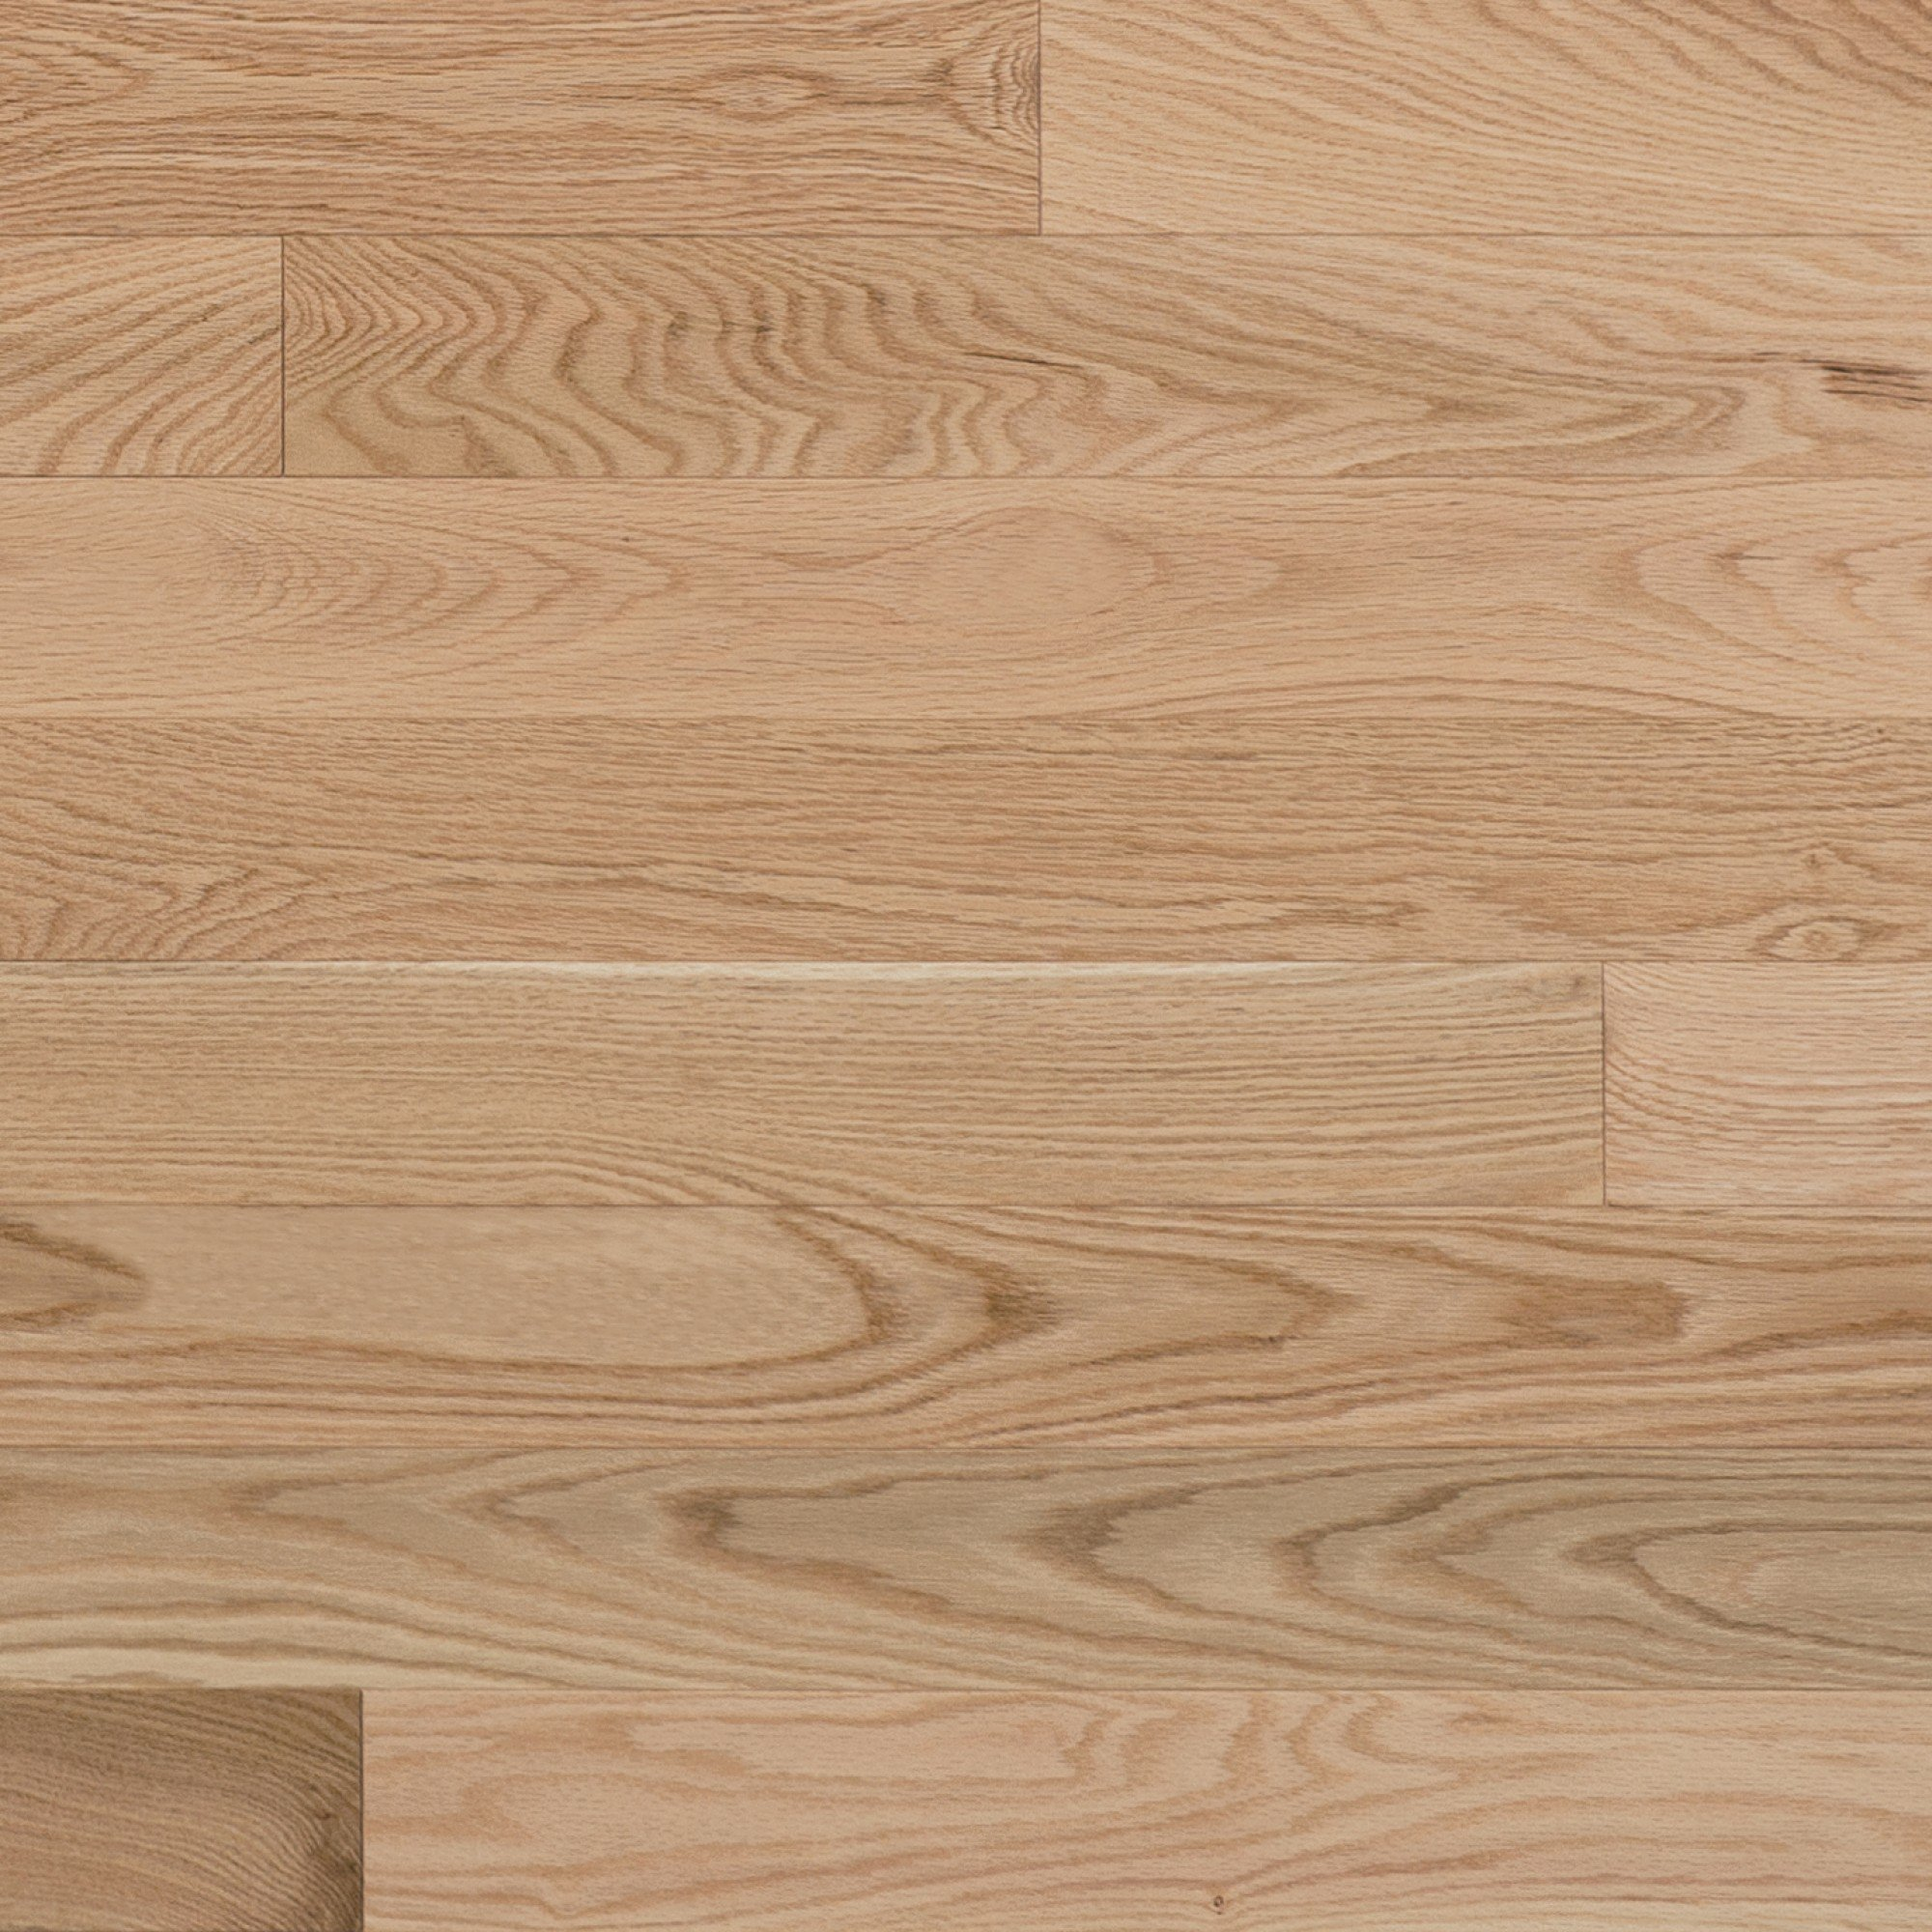 Red Oak Exclusive Smooth - Floor image